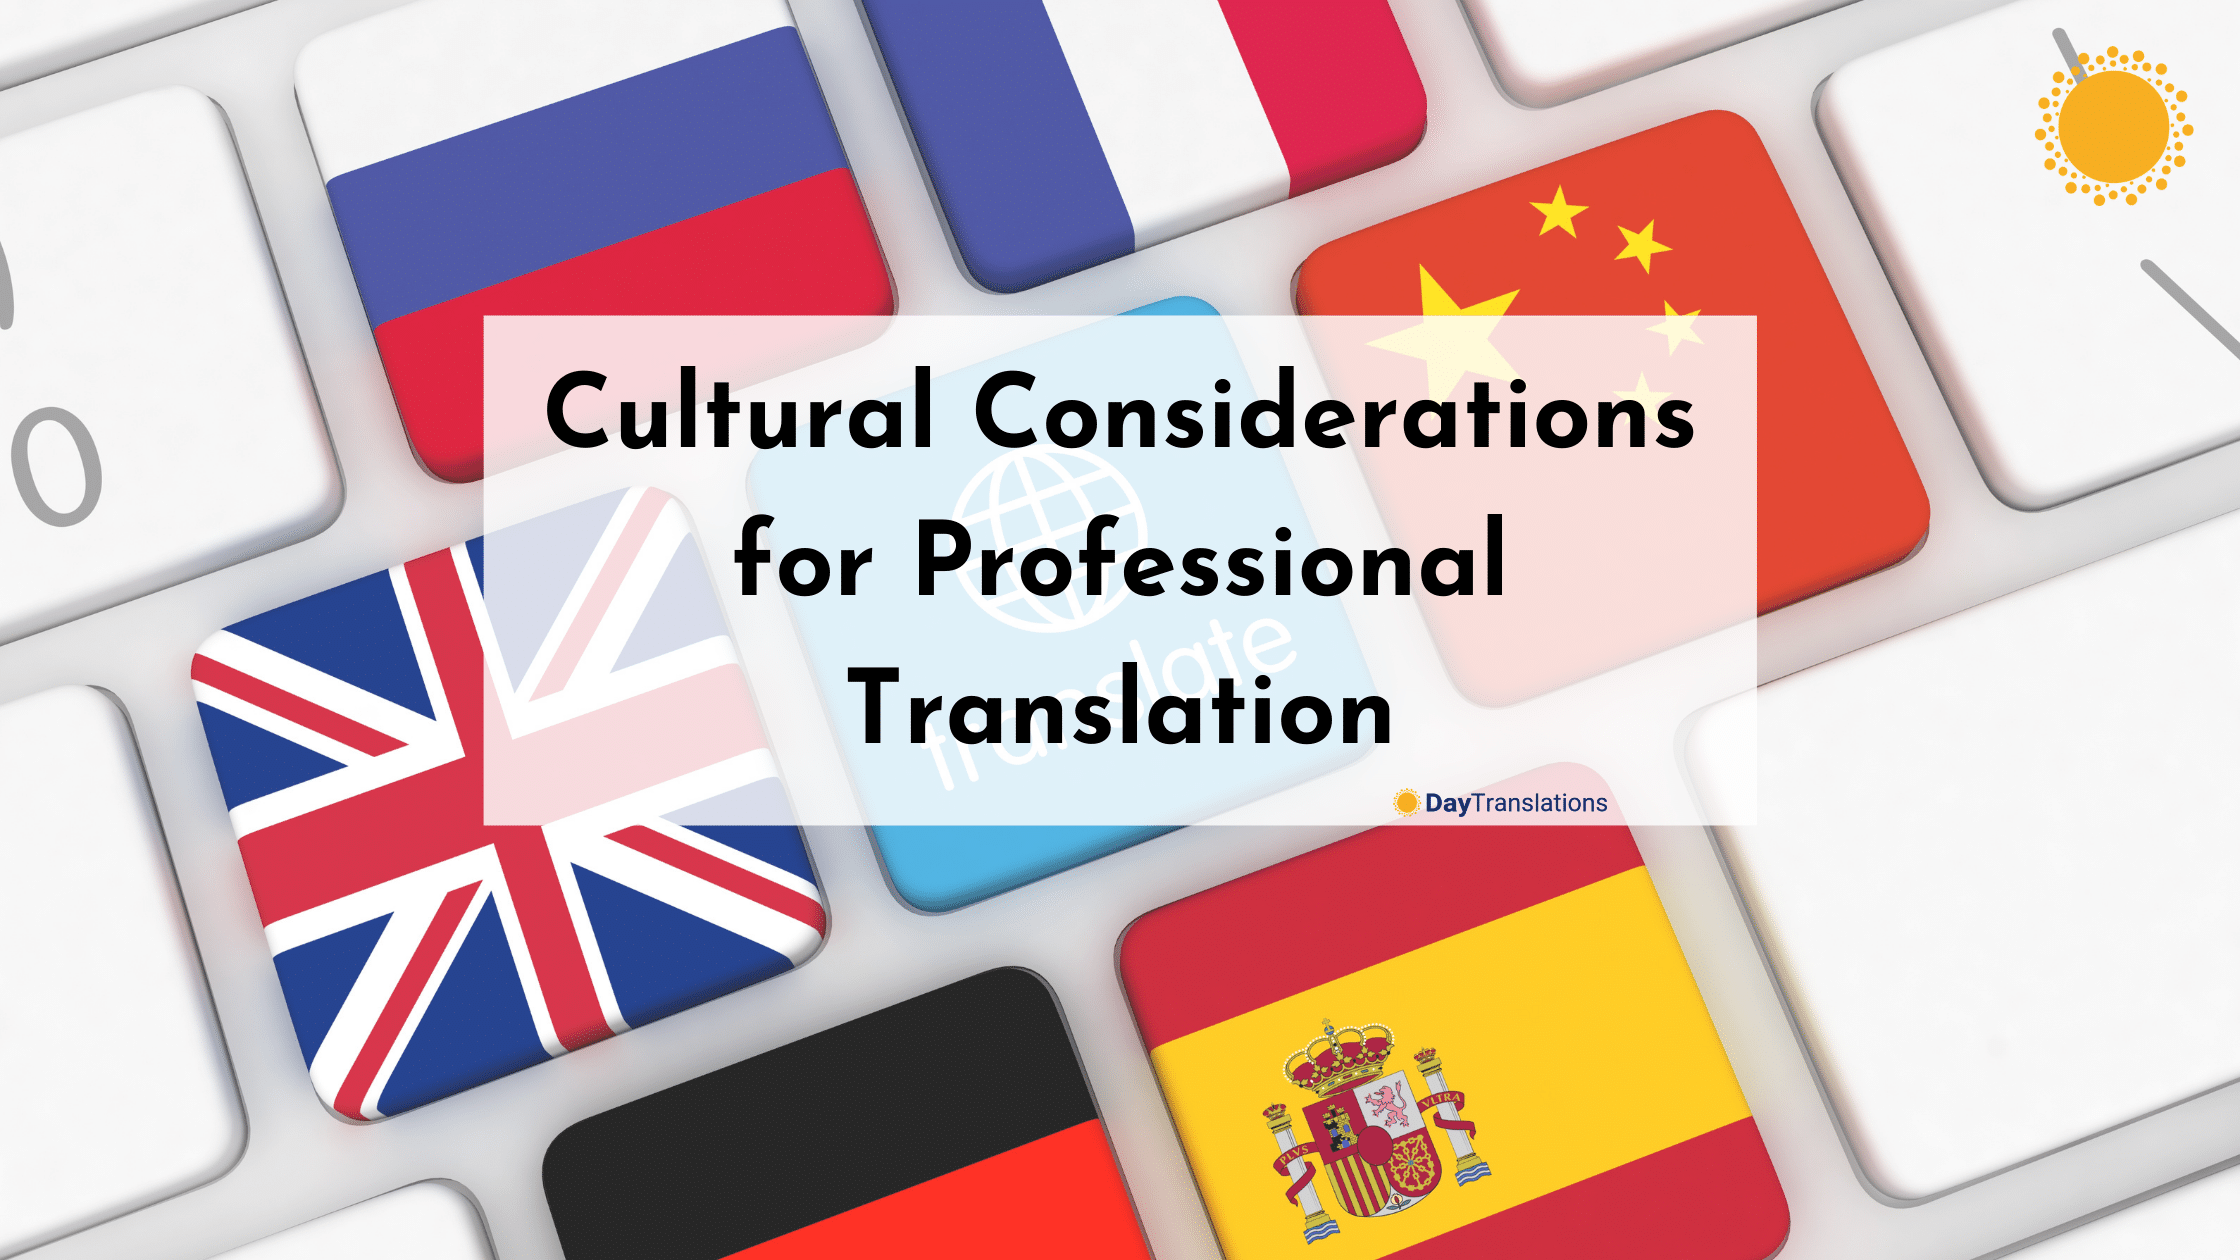 Cultural Considerations for Professional Translation